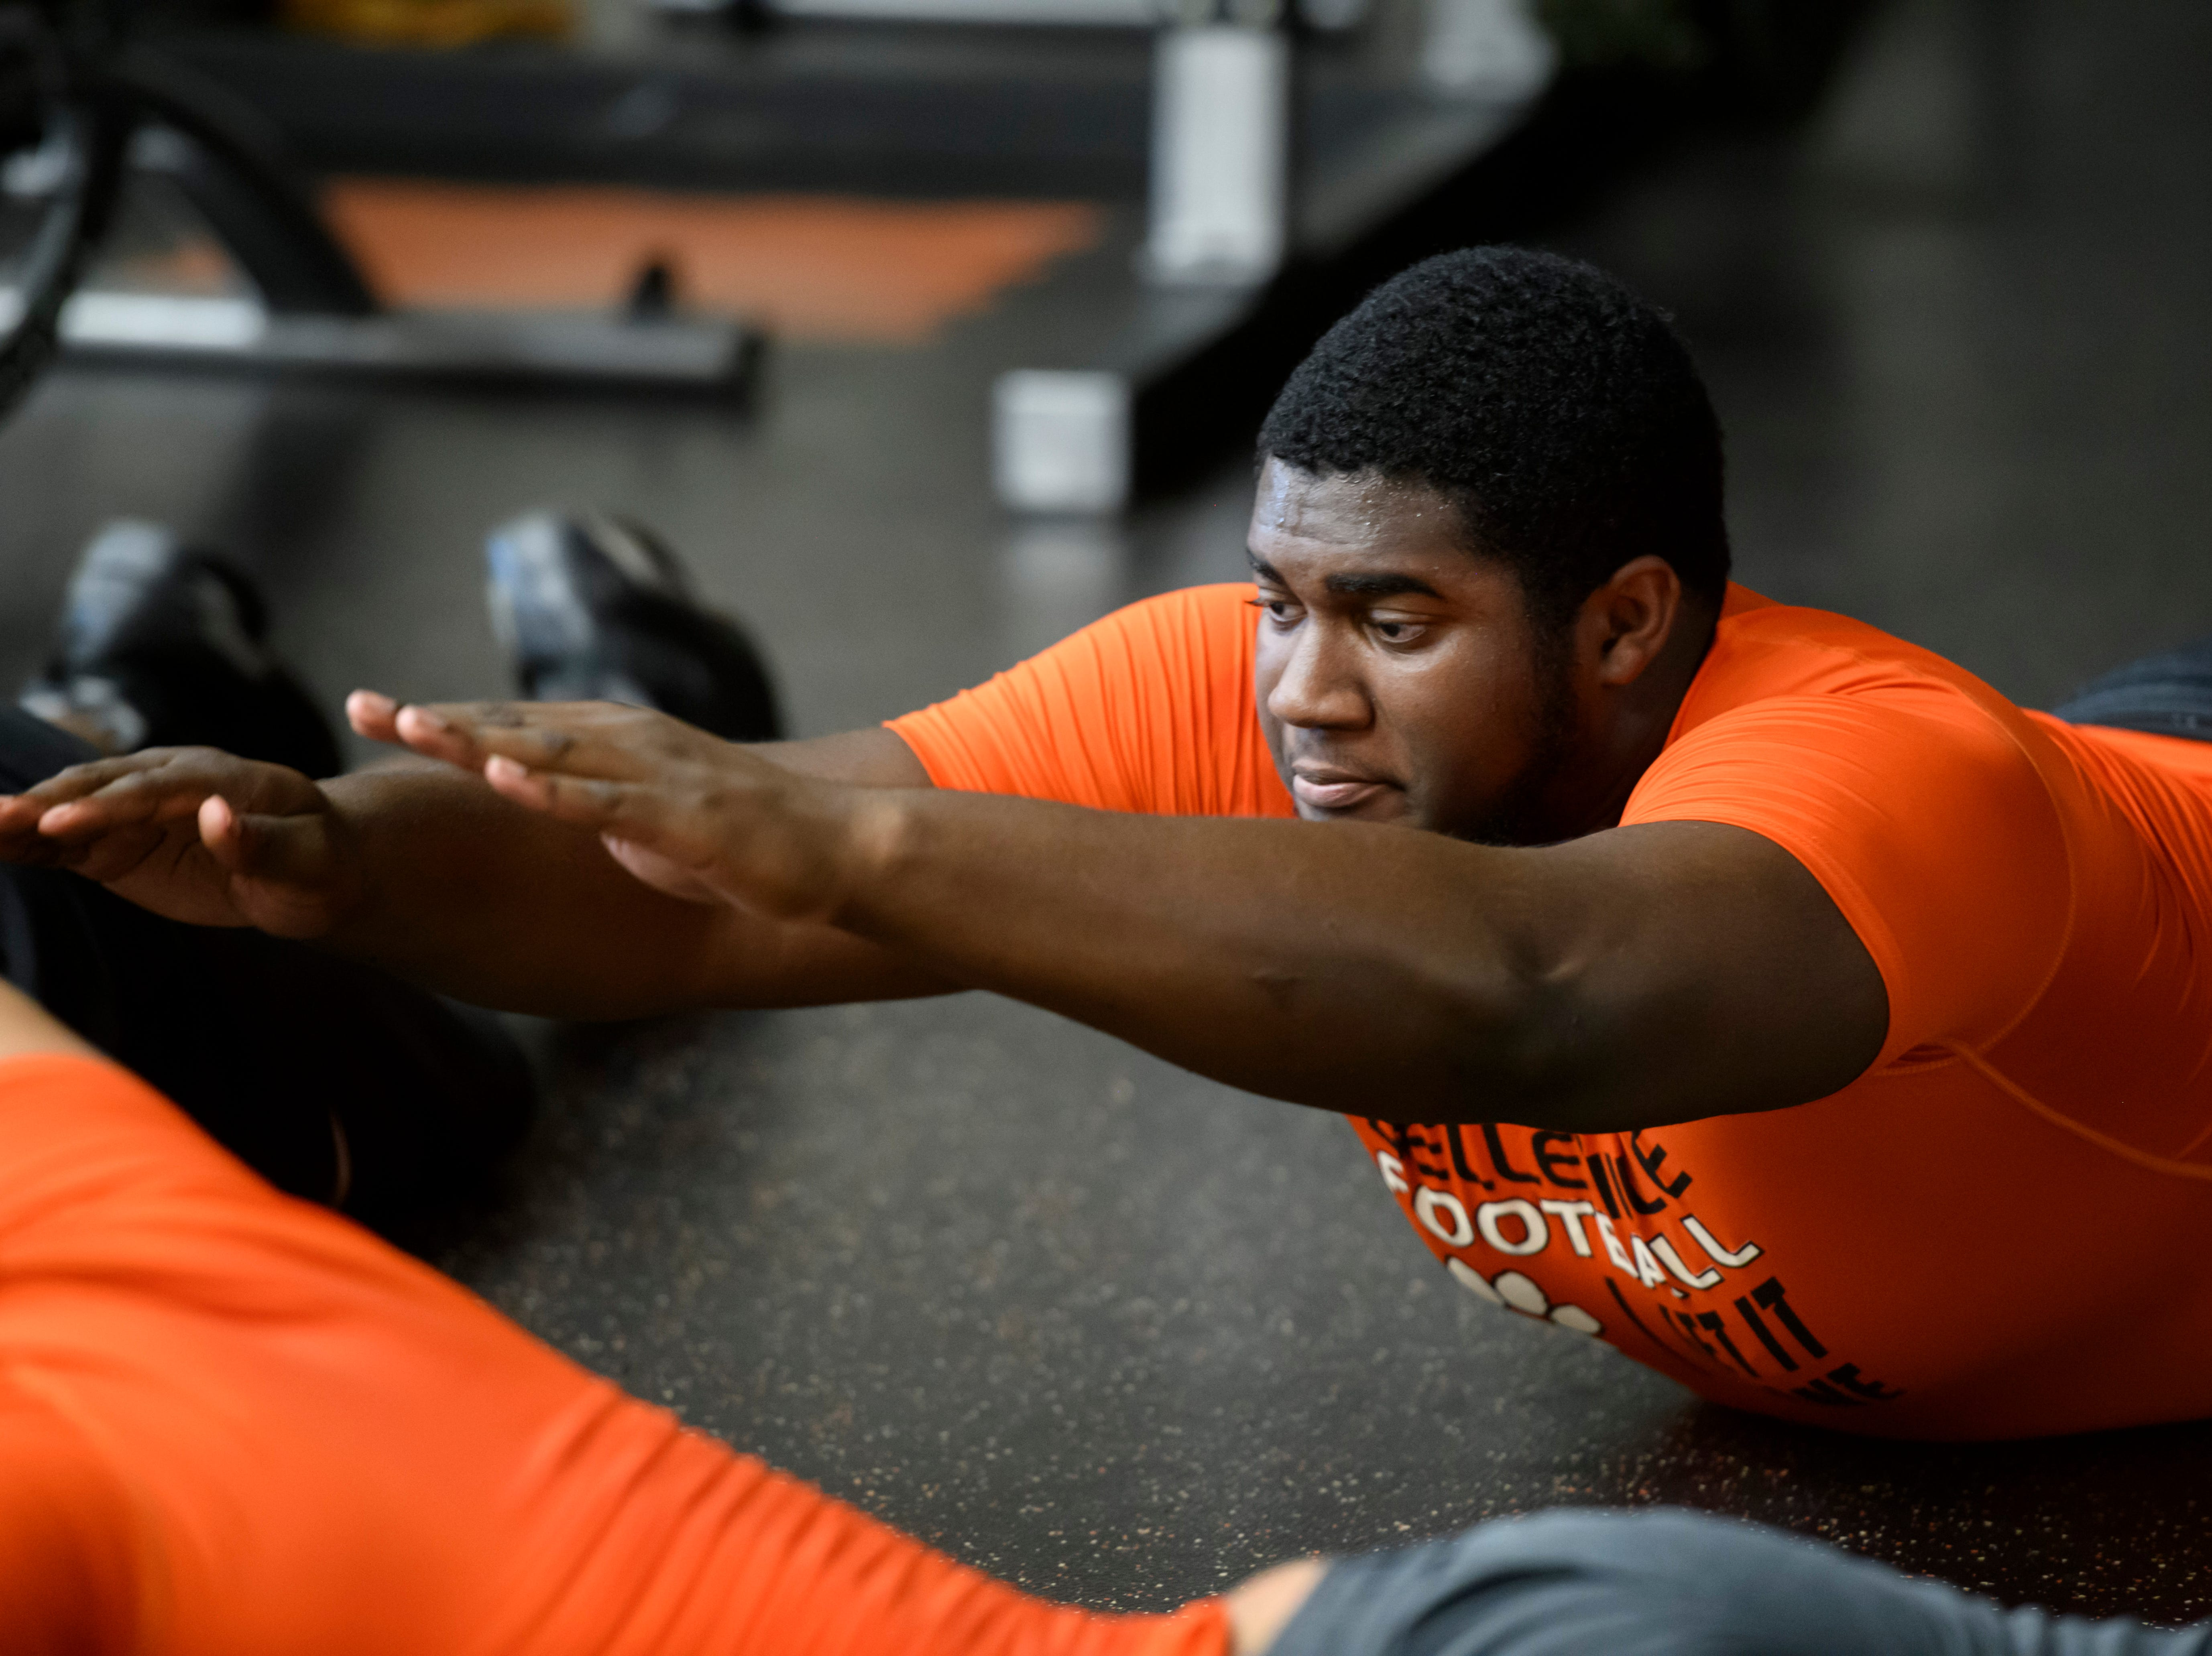 Belleville's Devontae Dobbs works out in the weight room.